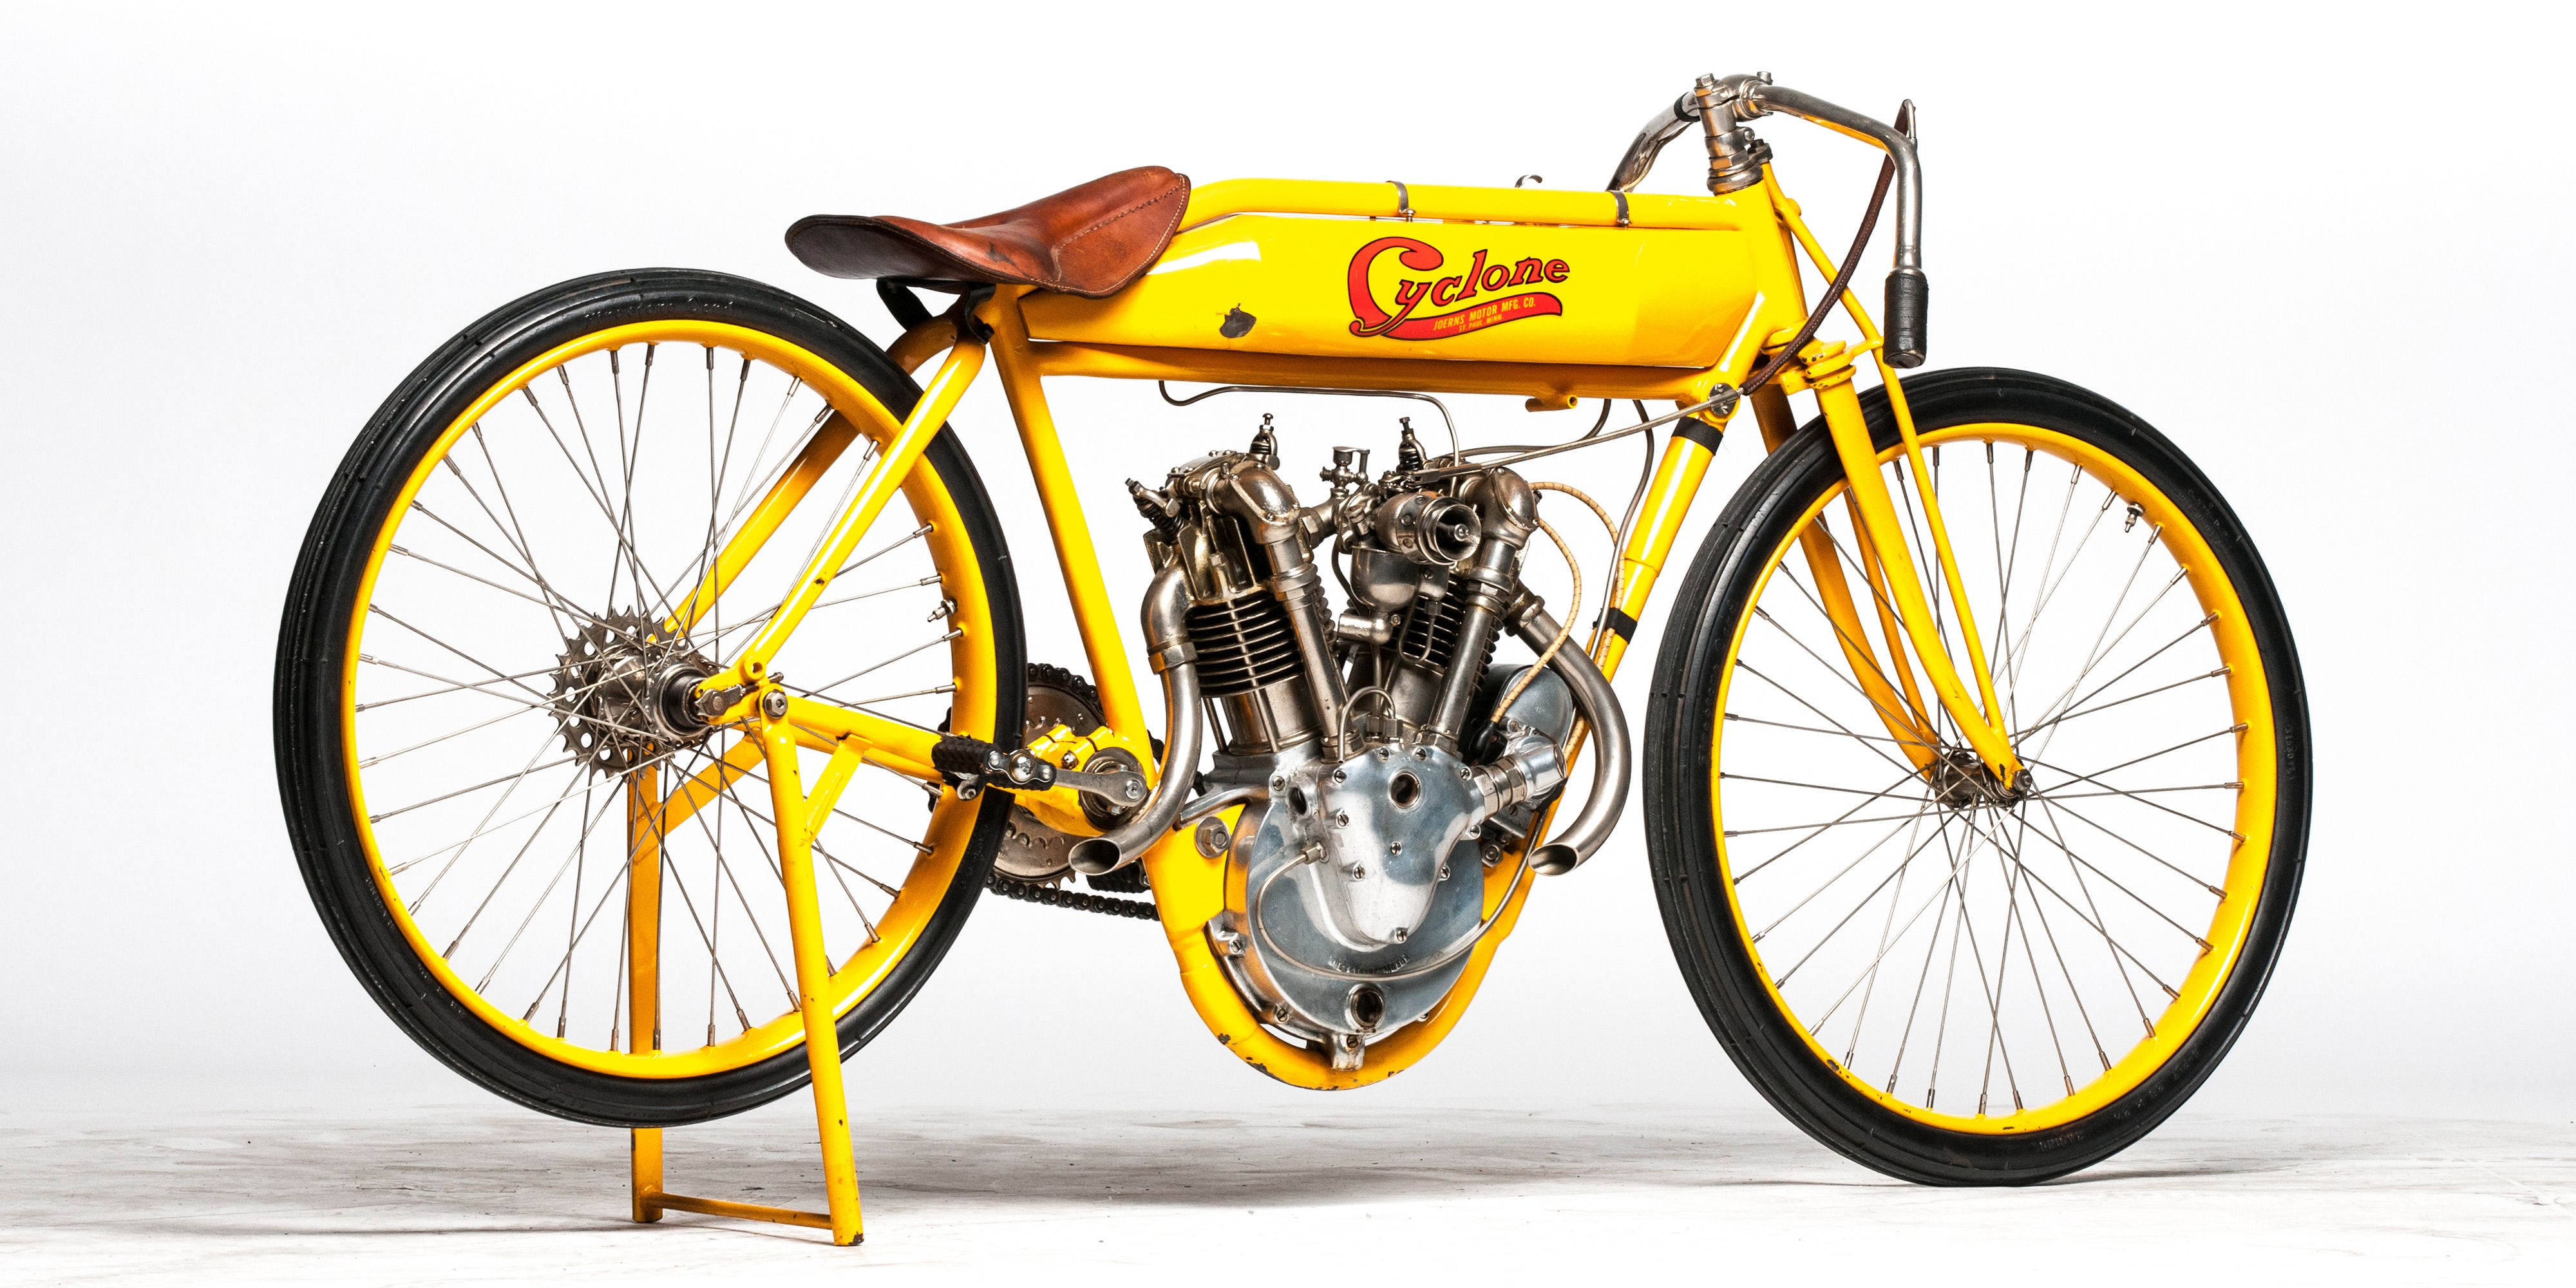 American, temperamental, and a hell of a performer. Similarities come easily between this 1915 Cyclone Board Track Racer and its former owner, Steve McQueen.